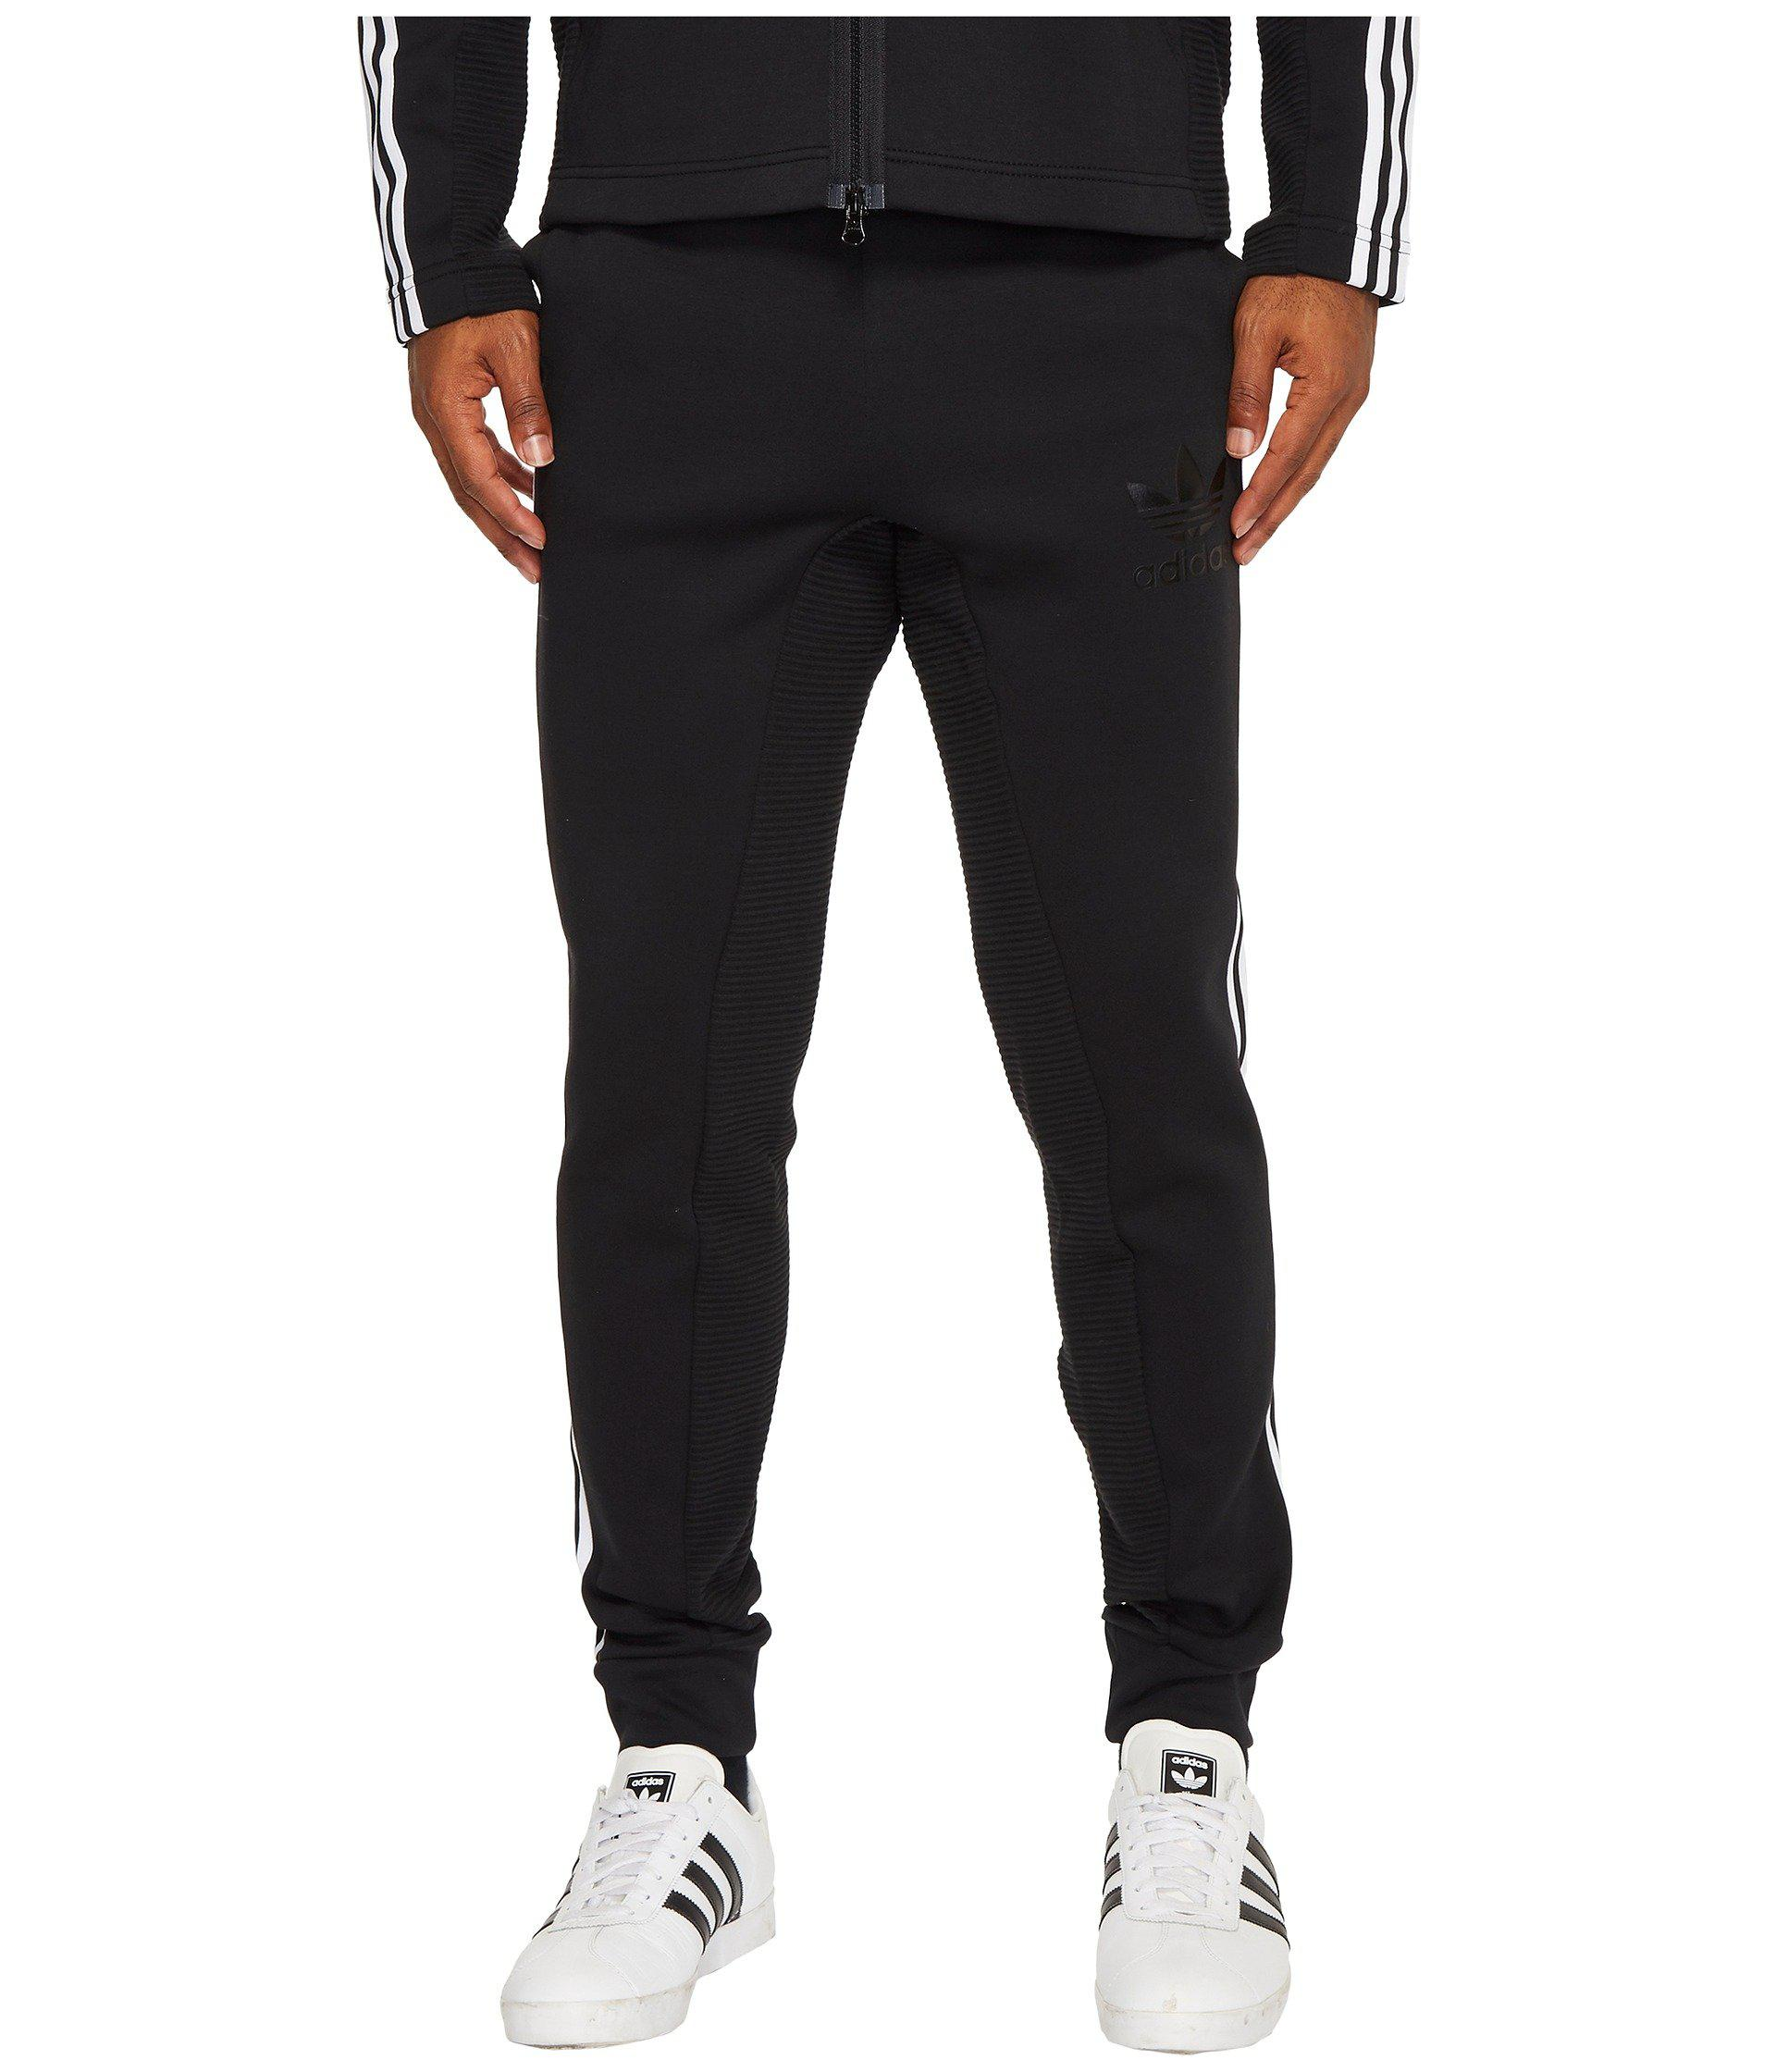 cheap for discount 7068f 1cb90 Lyst - adidas Originals Curated Pants (black) Men s Casual Pants in ...